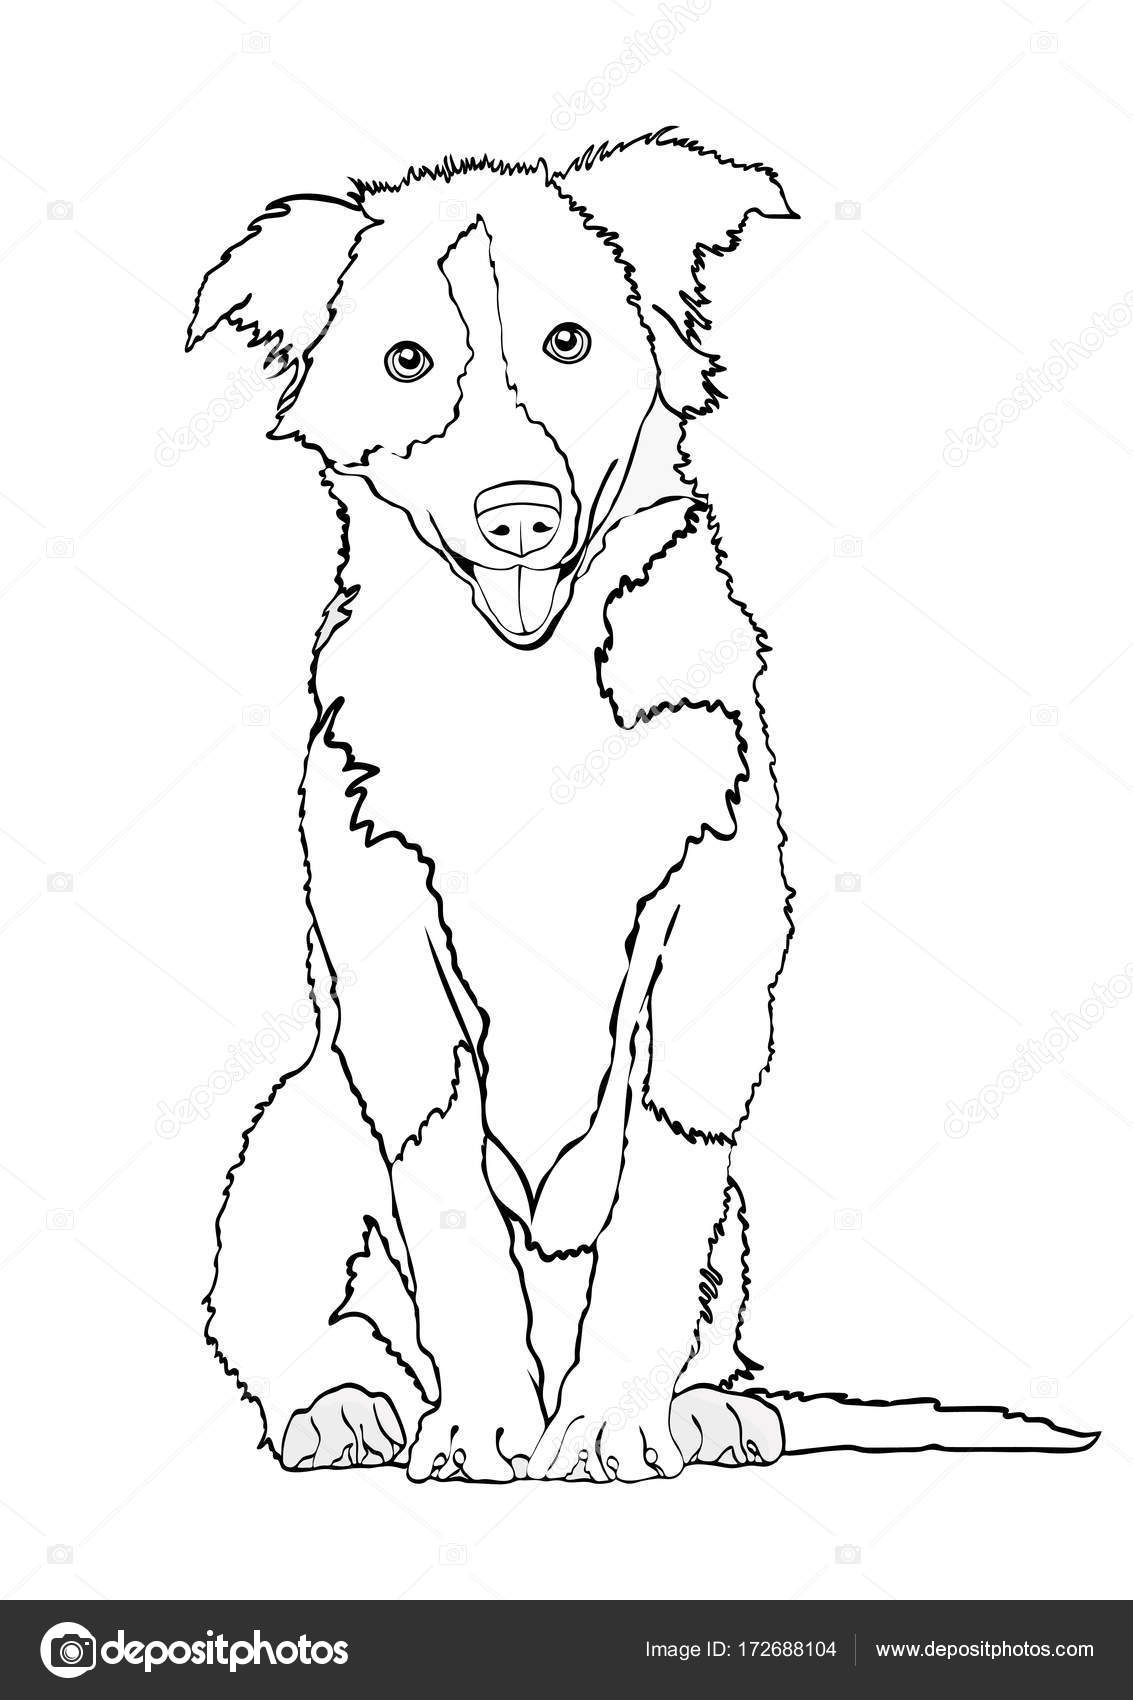 Dog Outline Drawing Dog Vector Outline Drawing Sketch Coloring Book Black And White Contour Cartoon Shaggy Dog Full Length Isolated On White Background Stock Vector C Eva Che 172688104